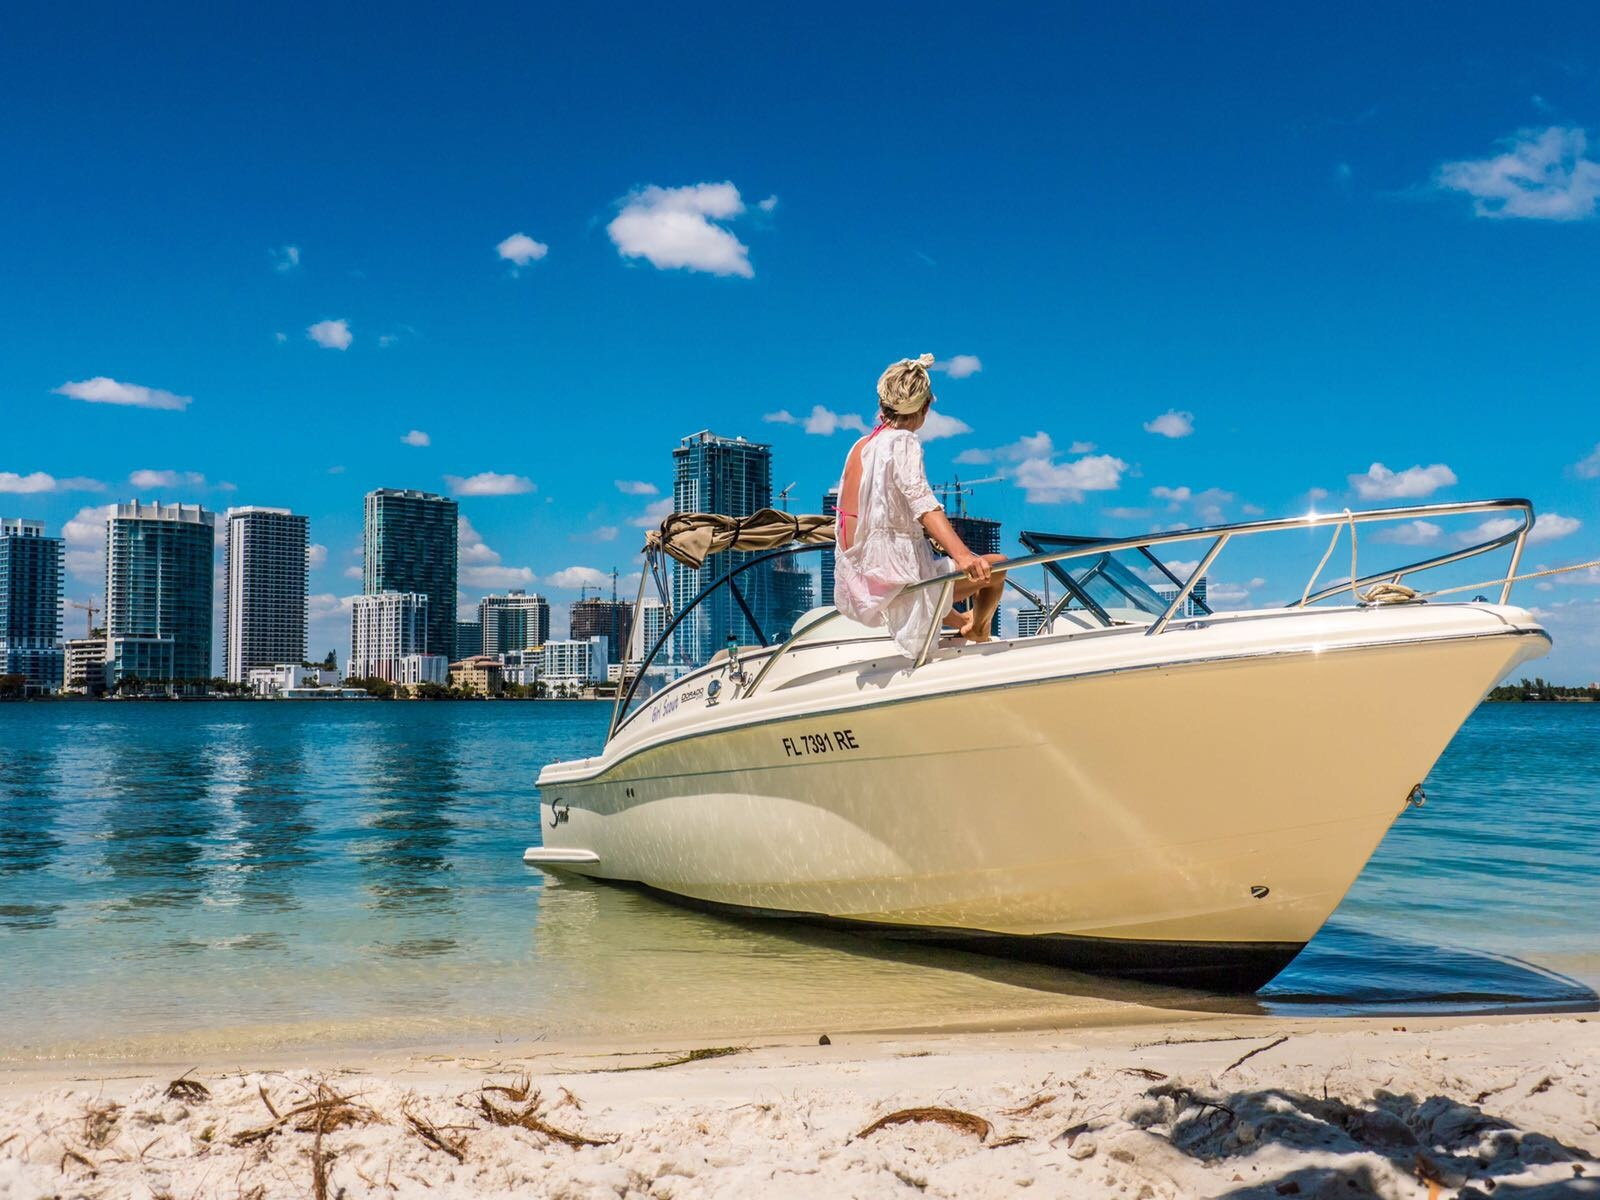 Travel and Wellness With Maria: Cheap Ways to Rent a Boat in Miami